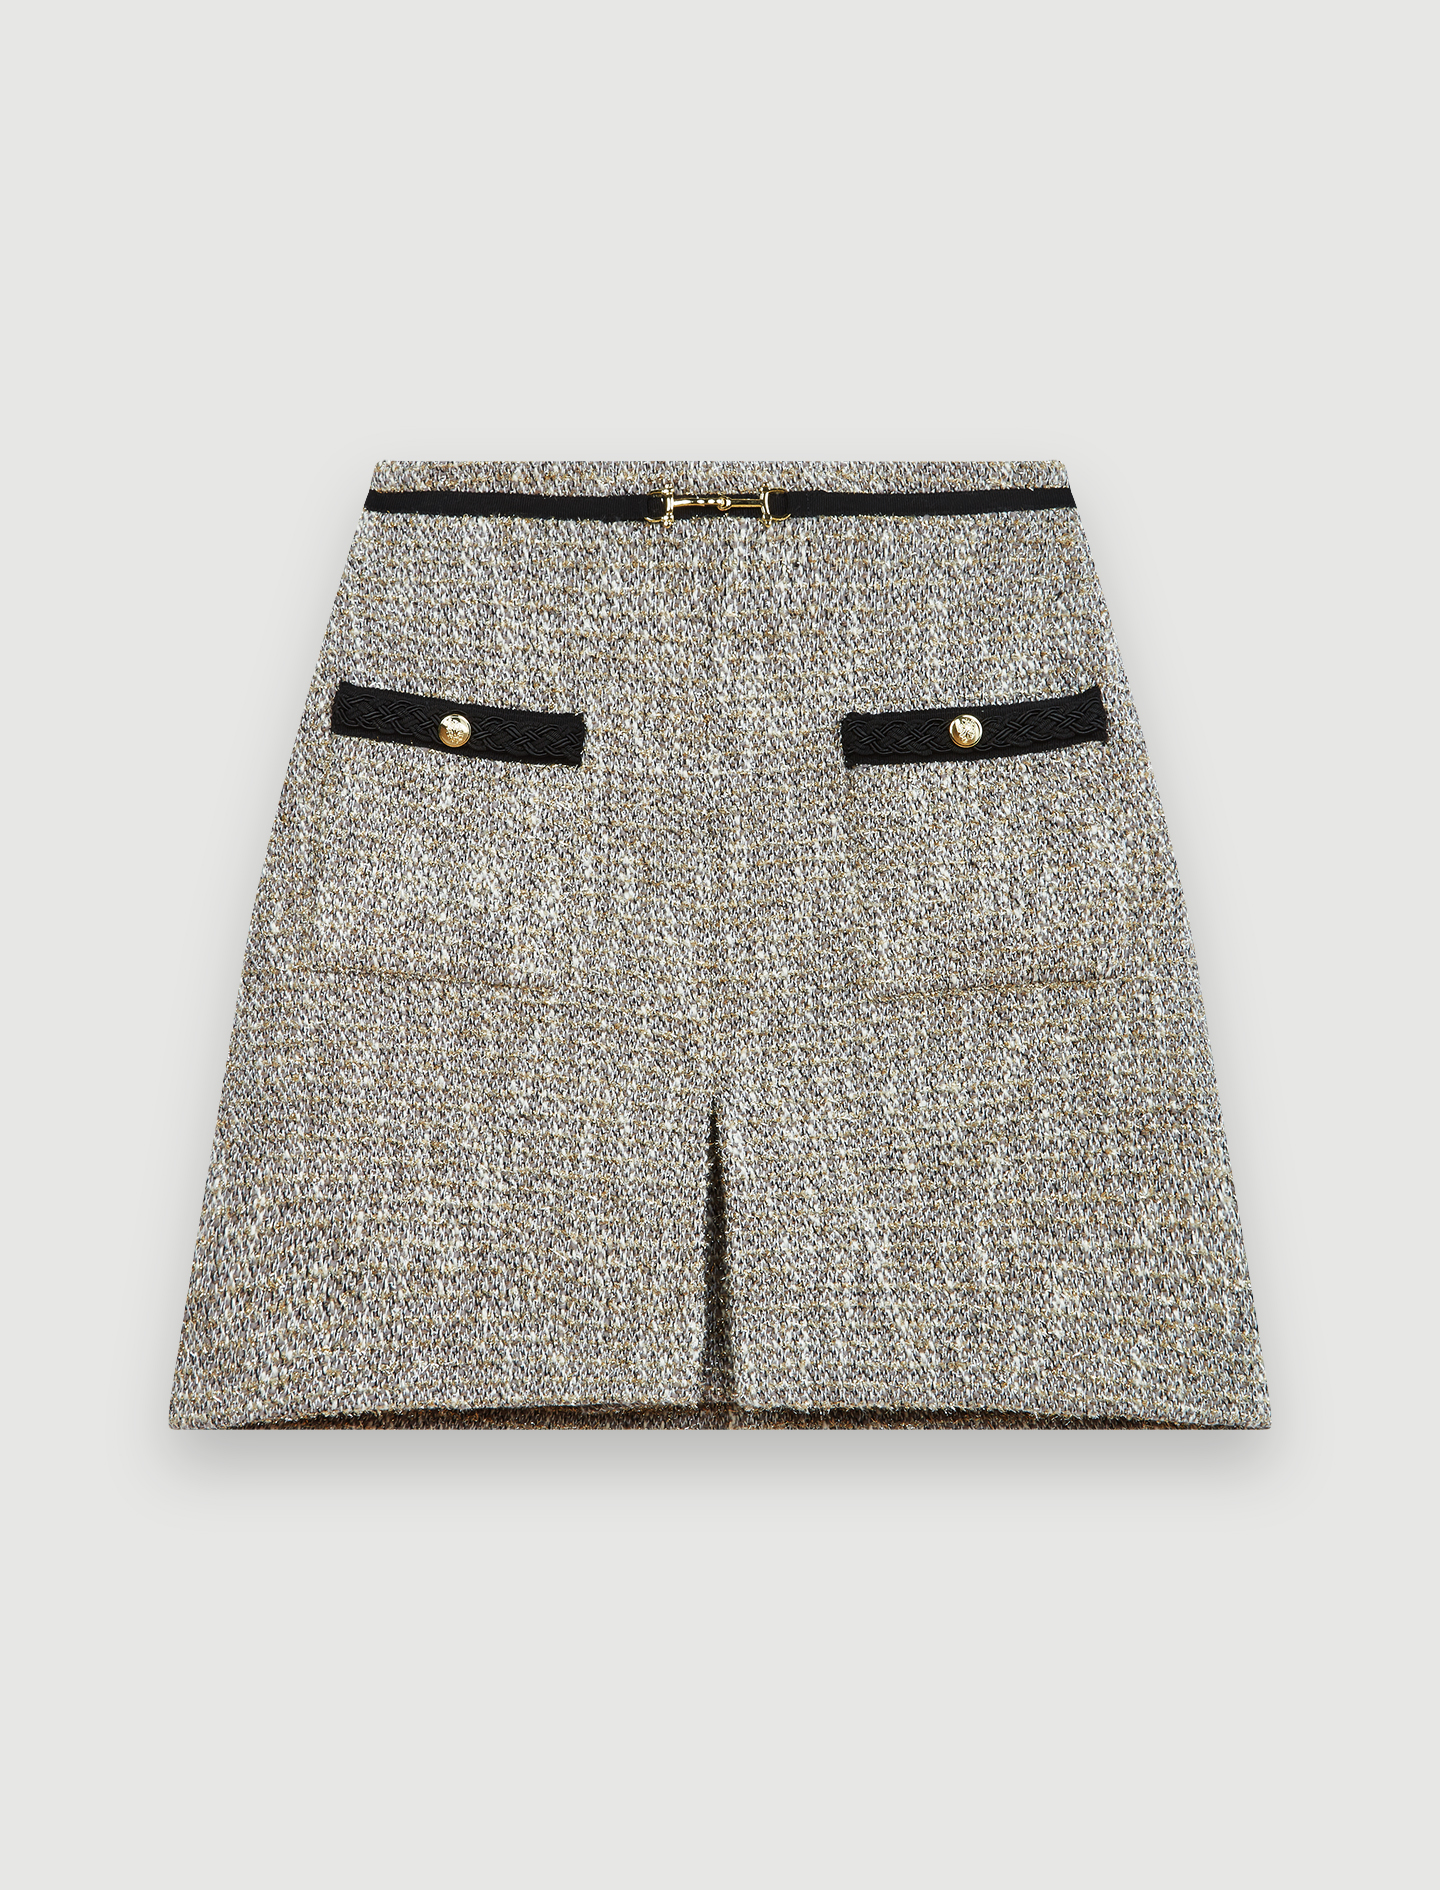 Recycled cotton tweed style skirt - Silver